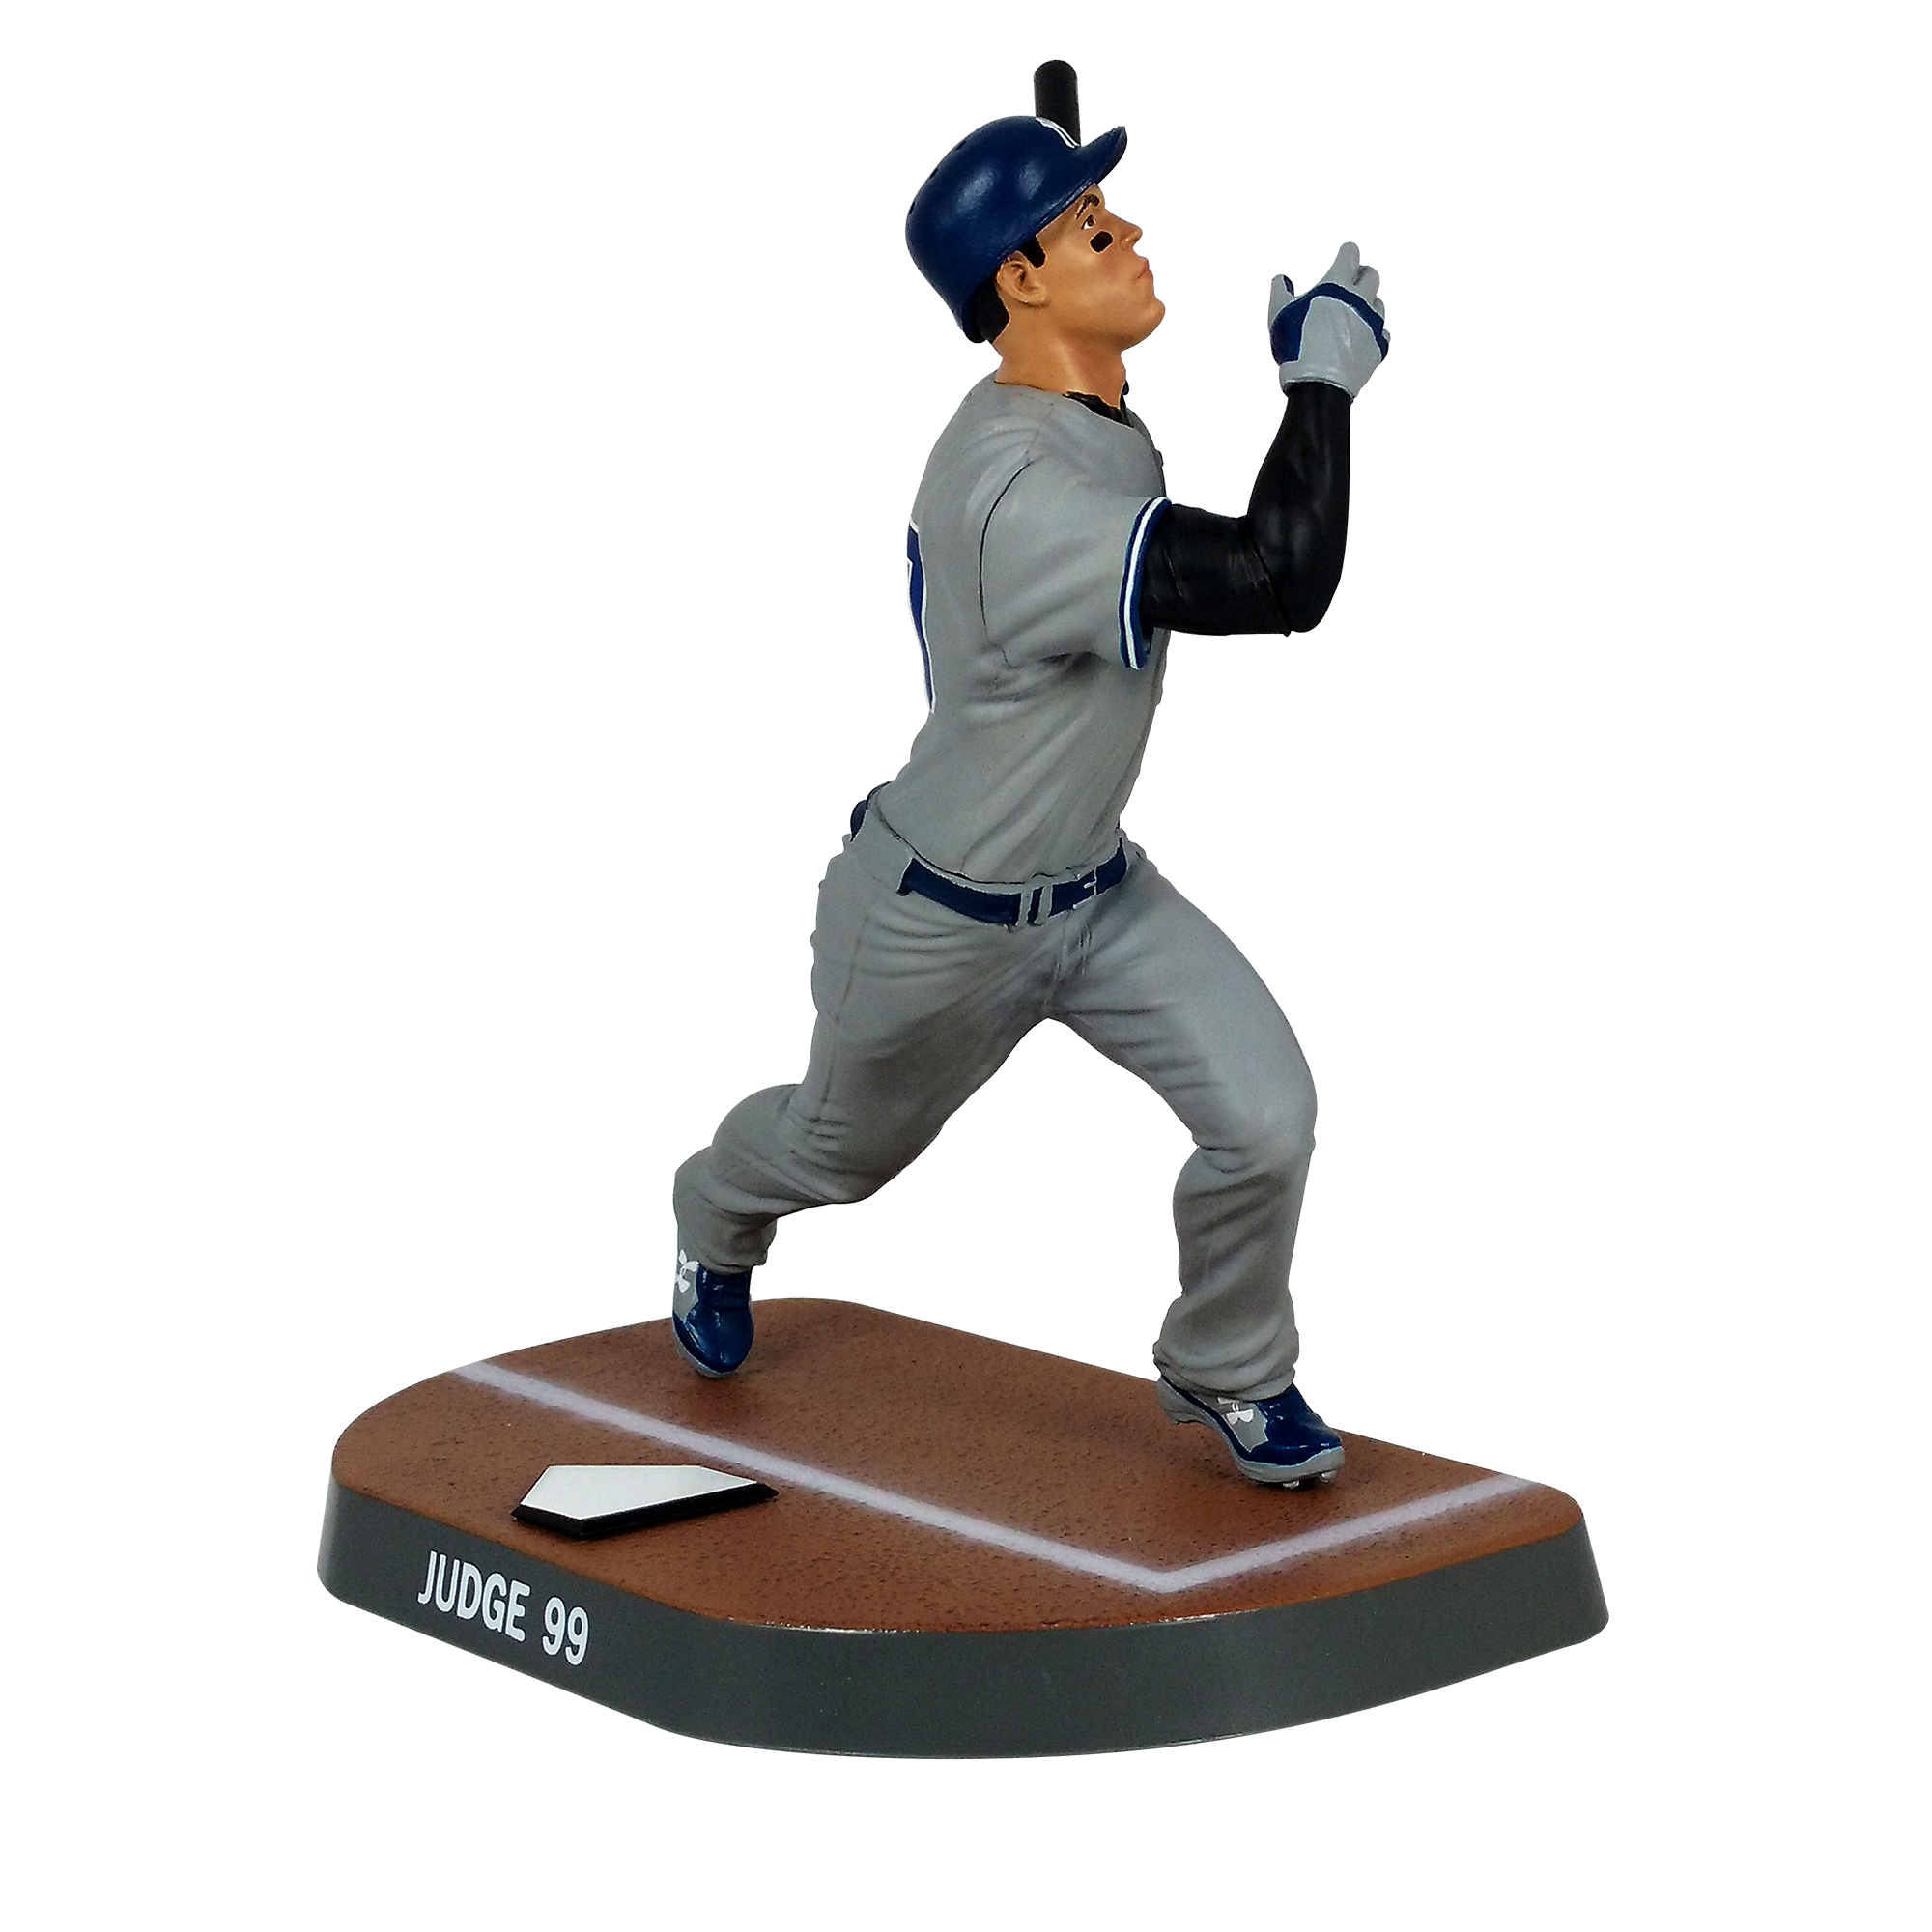 "Aaron Judge New York Yankees Imports Dragon 6"" Player Replica Figurine - No Size"